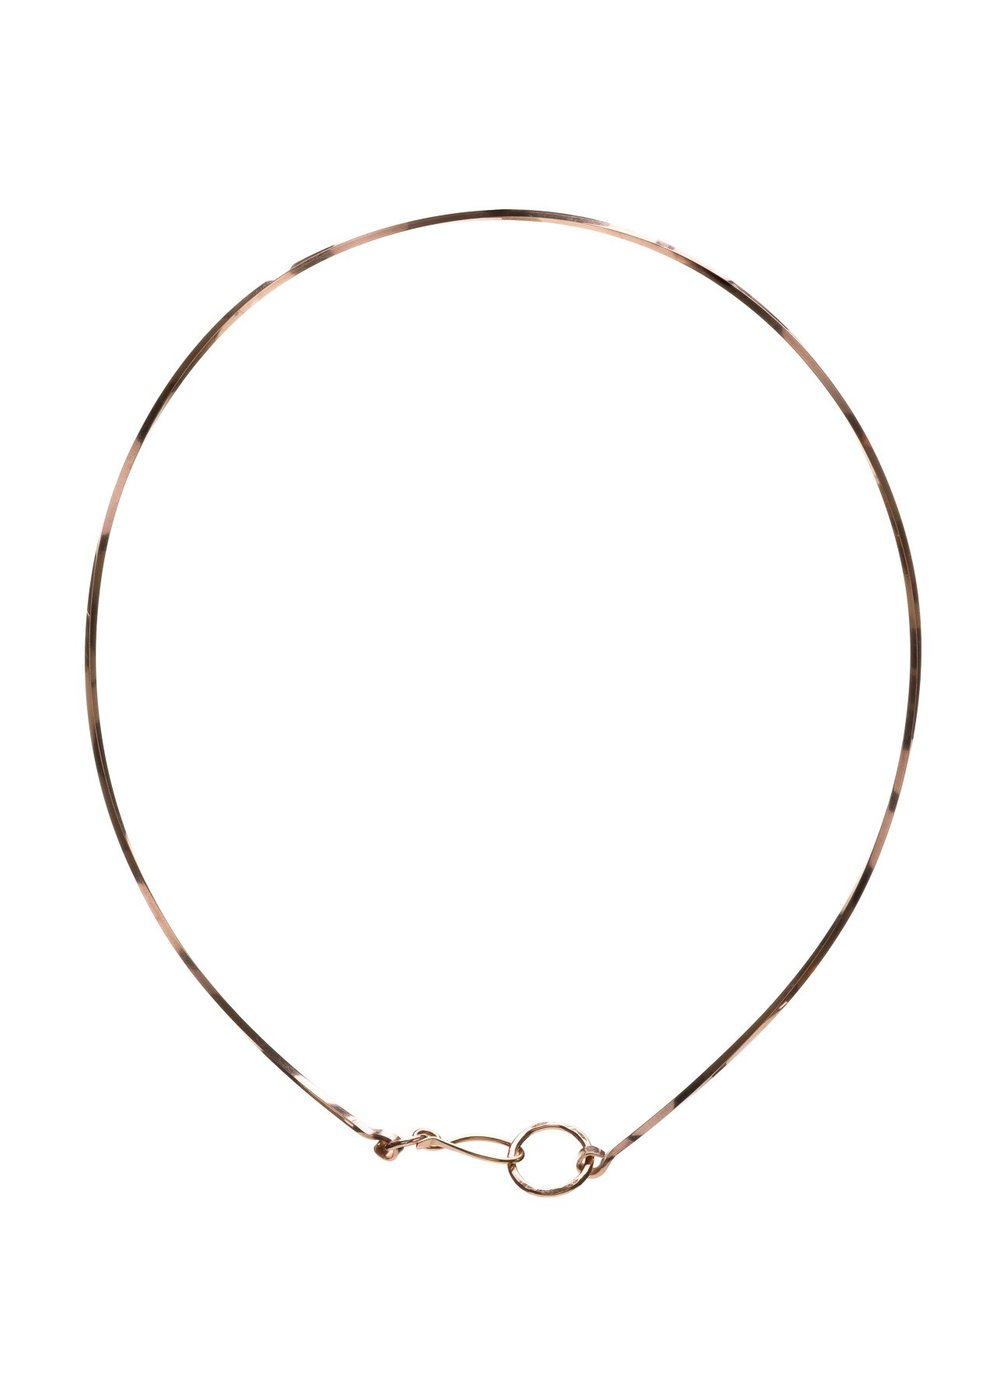 Rose Gold Twisted Neck Wire - $98 The Kenda Kist Twisted Neck Wire is available in Sterling Silver, 14k Rose Gold-Filled or 14k Gold-Filled metals.